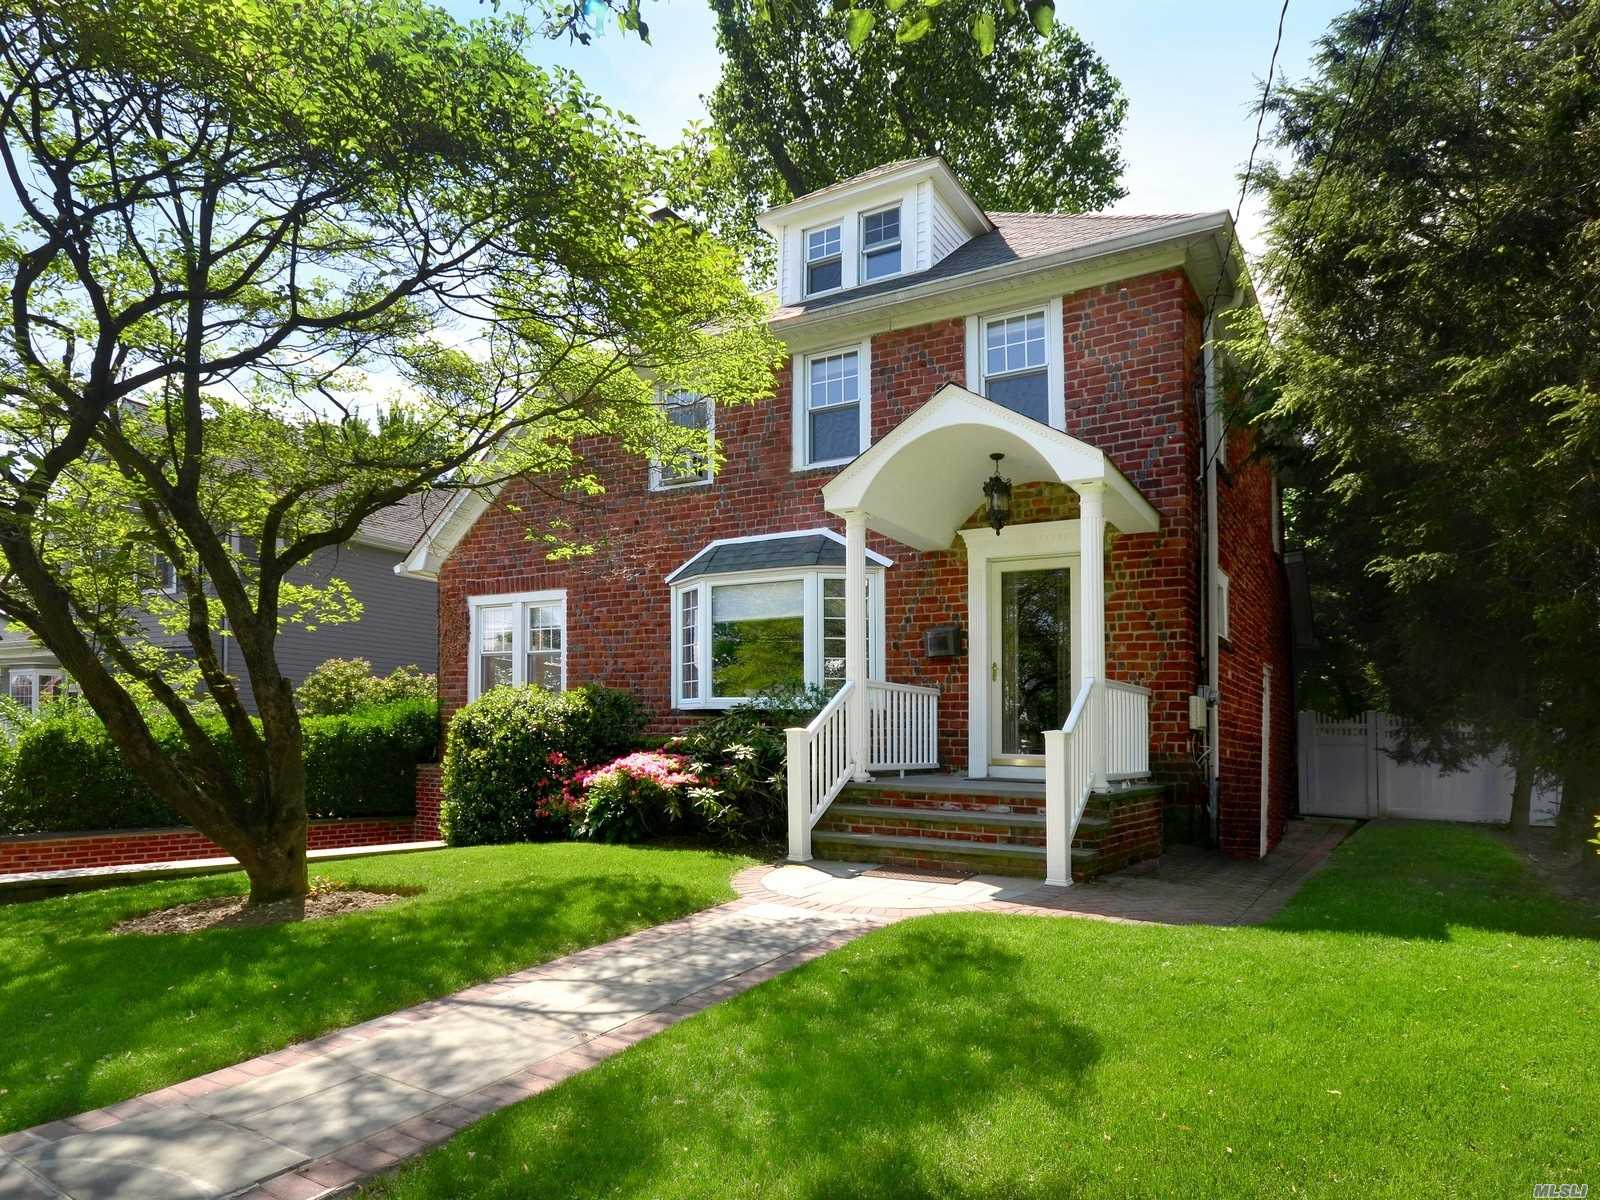 Close To All! Beautiful Brick Colonial With 3Br And 1.5 Bath In Mint Condition. Spacious Entrance Foyer, Bright Lr W/Bay Windows & Fpl, Dr W/Sliders To Deck. Kitchen W/Breakfast Nook. Finished Basement W/Powder Room, Attached Garage. Can Be Delivered Furnished Or Unfurnished. A Trained Pet Considered W/Extra Security. Full Credit Report And Proof Of Funds Required.